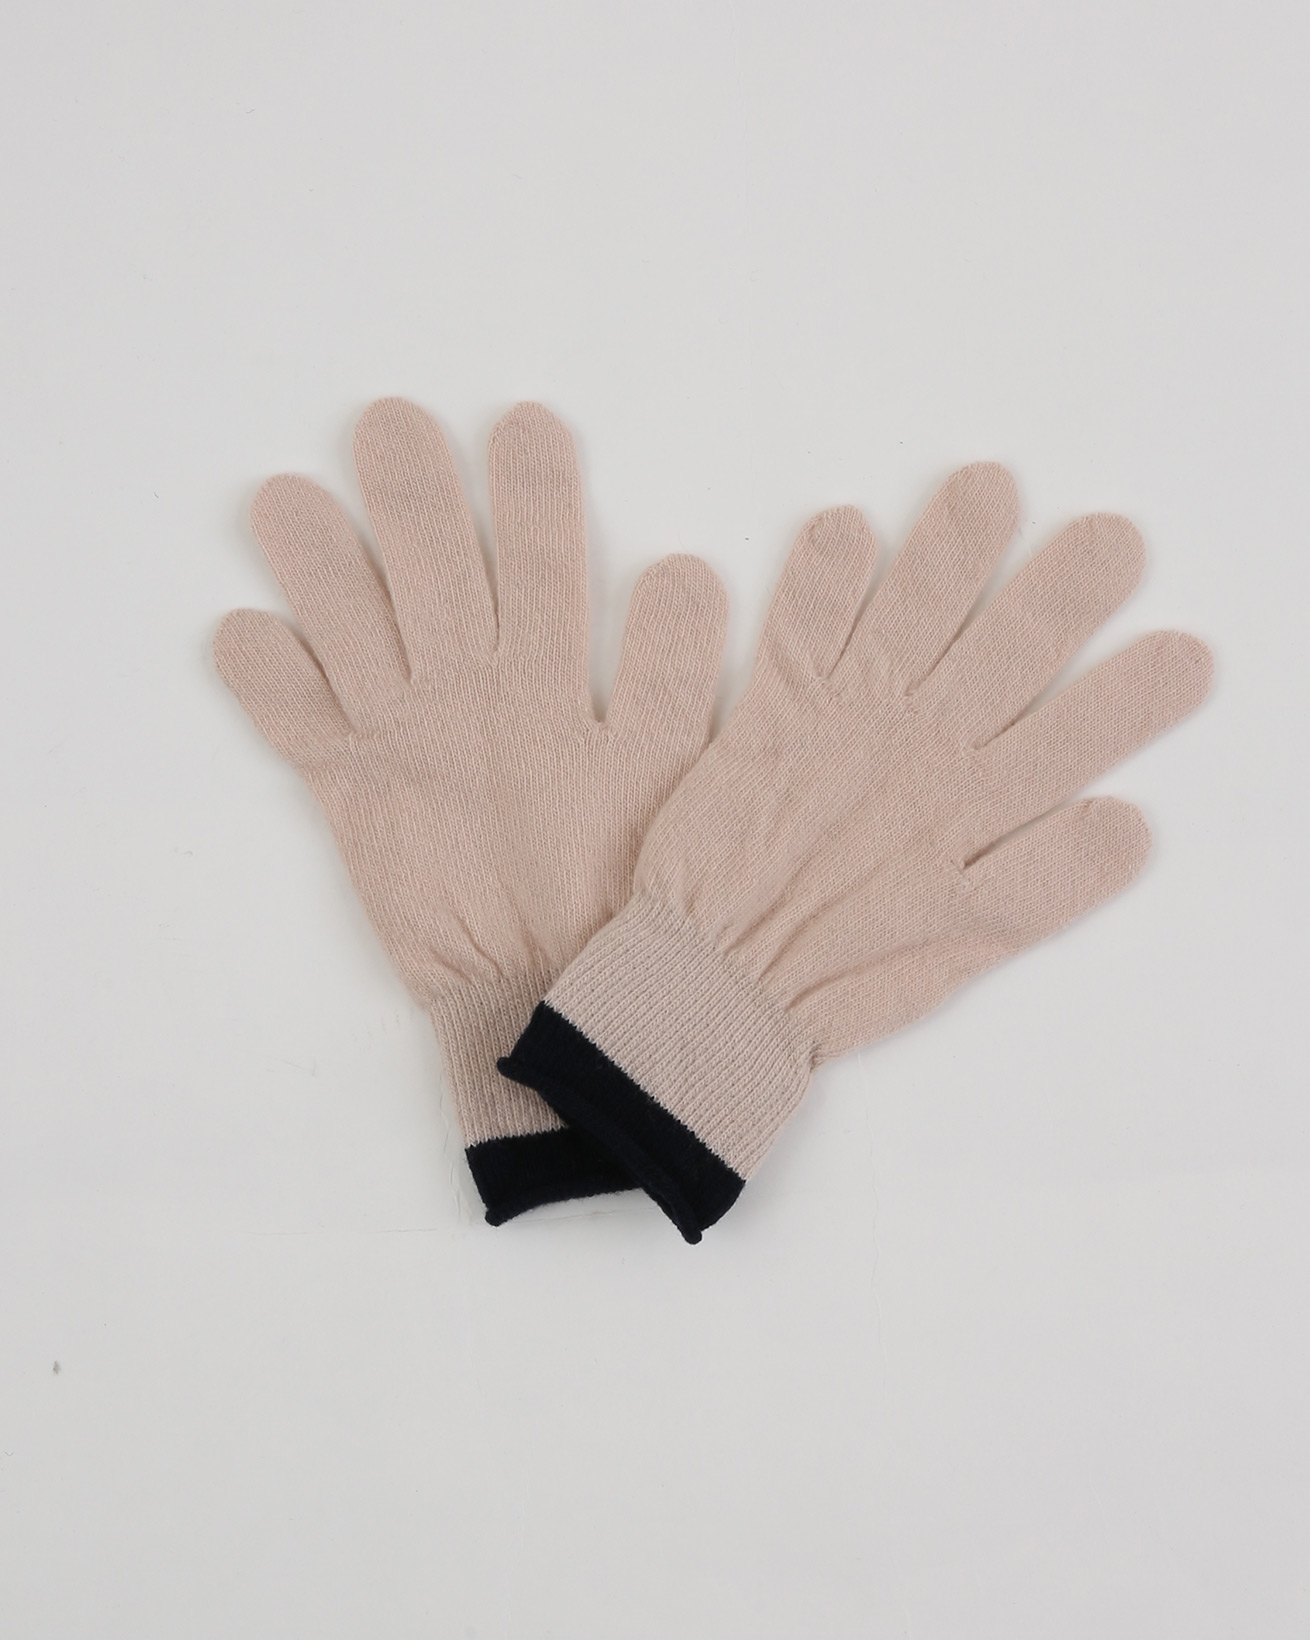 Tipping Stripe Glove - One Size - Peony/Navy - 1891